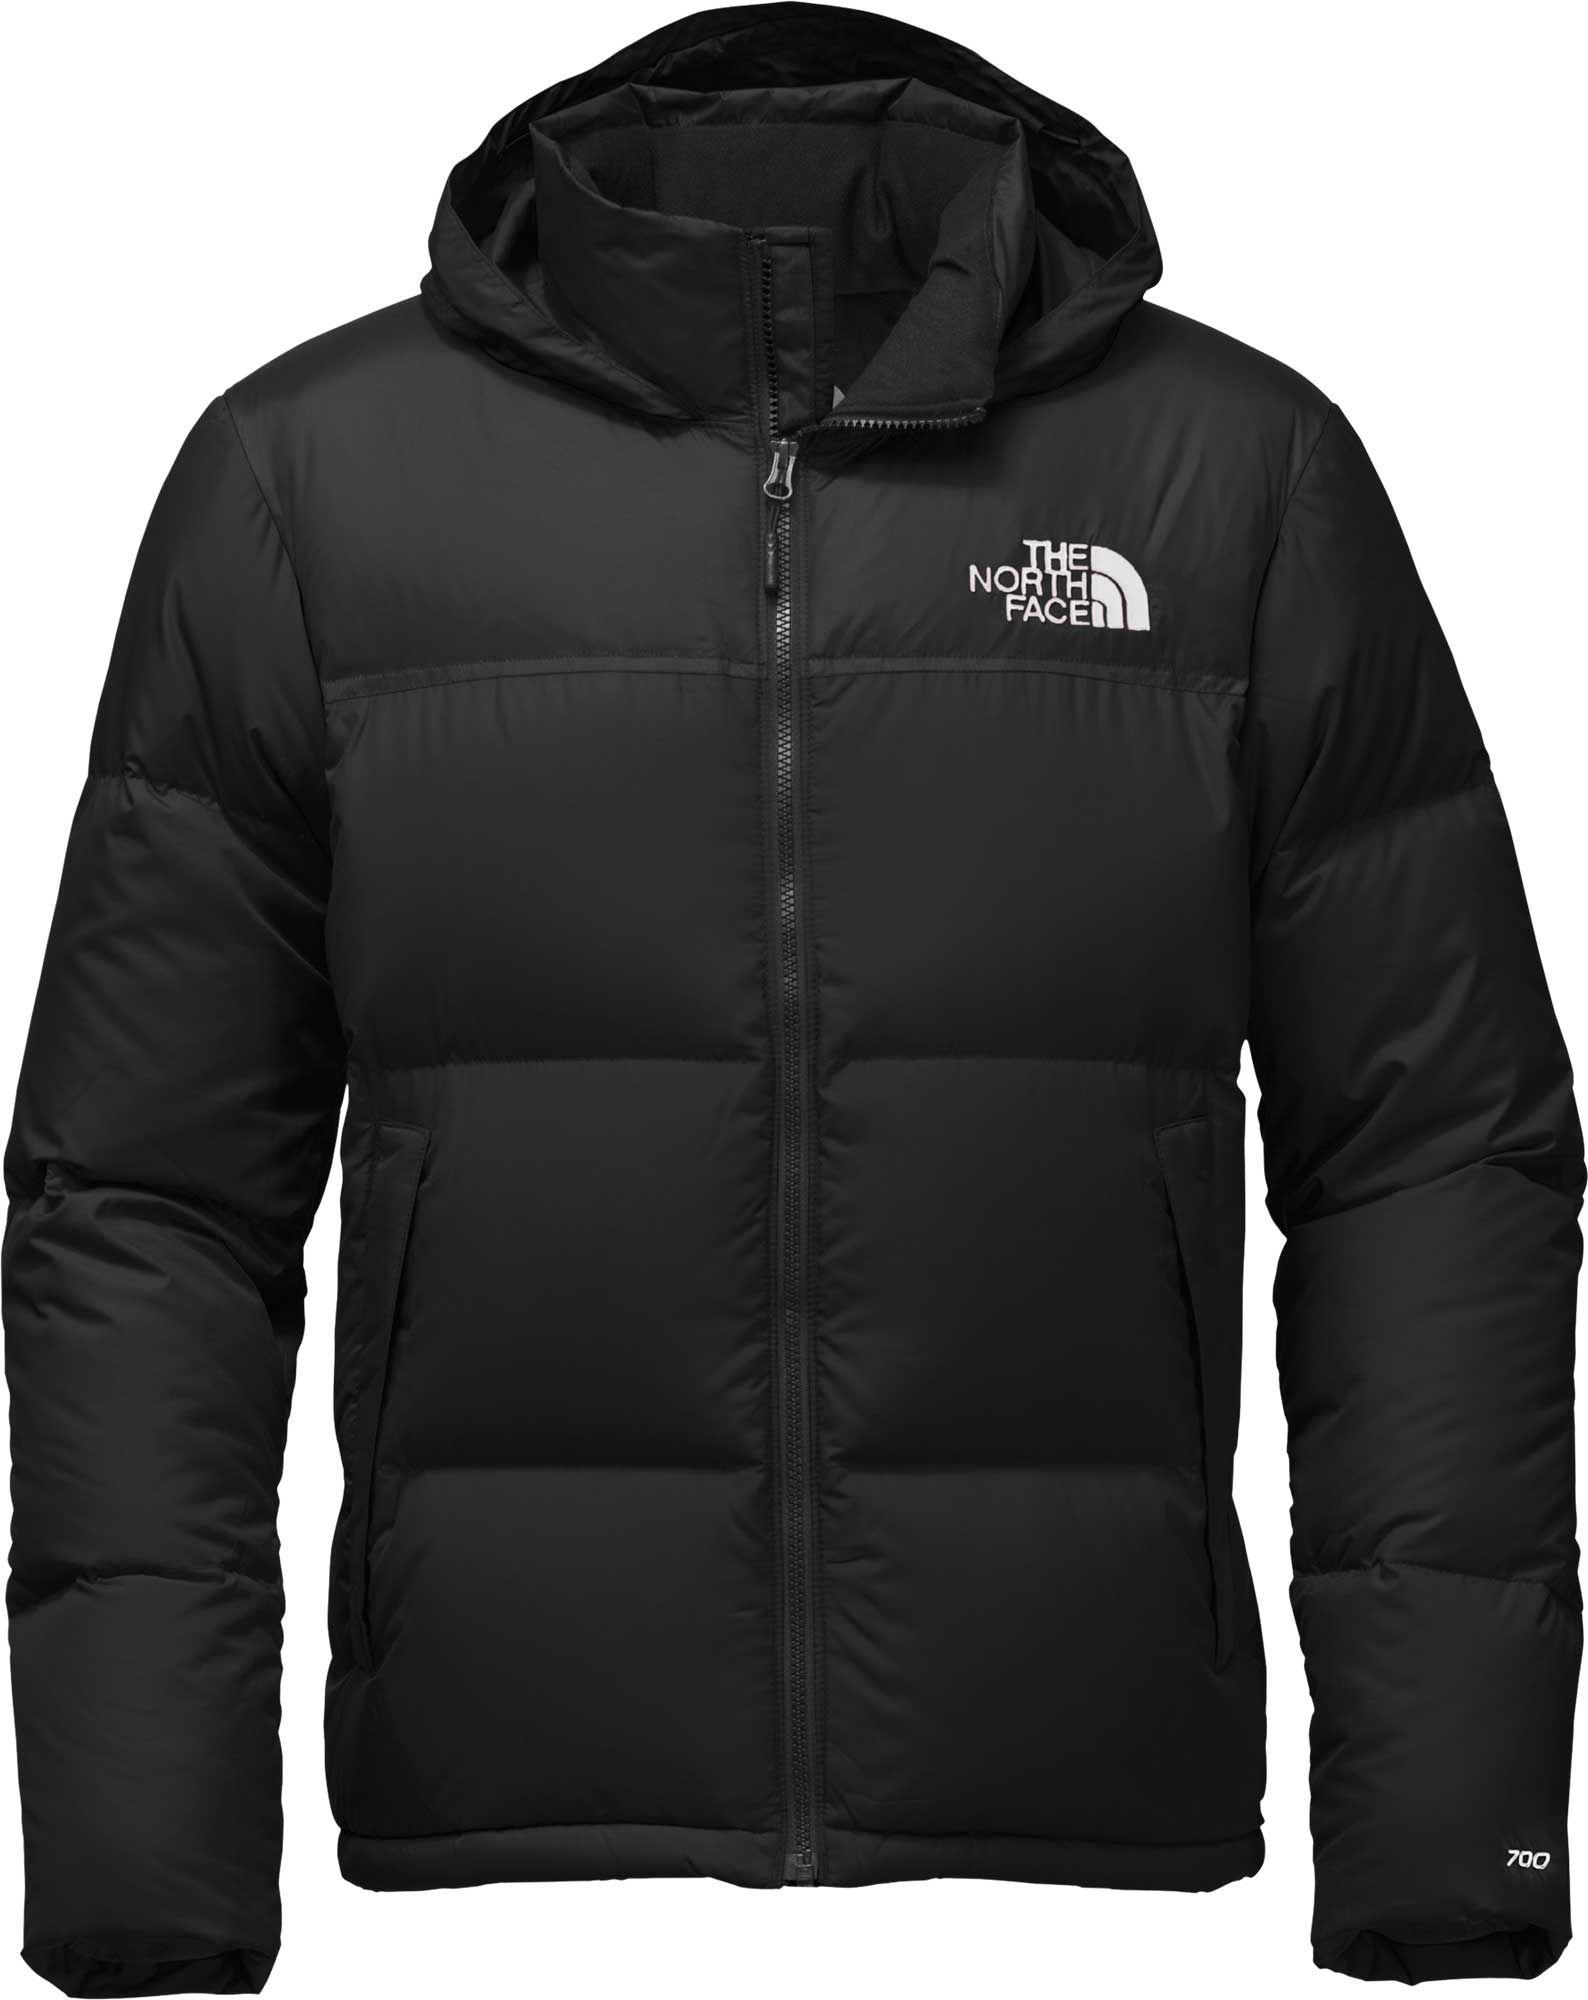 ... canada lyst the north face novelty nuptse down jacket in black for men  916fc 41c05 27e71a3d4